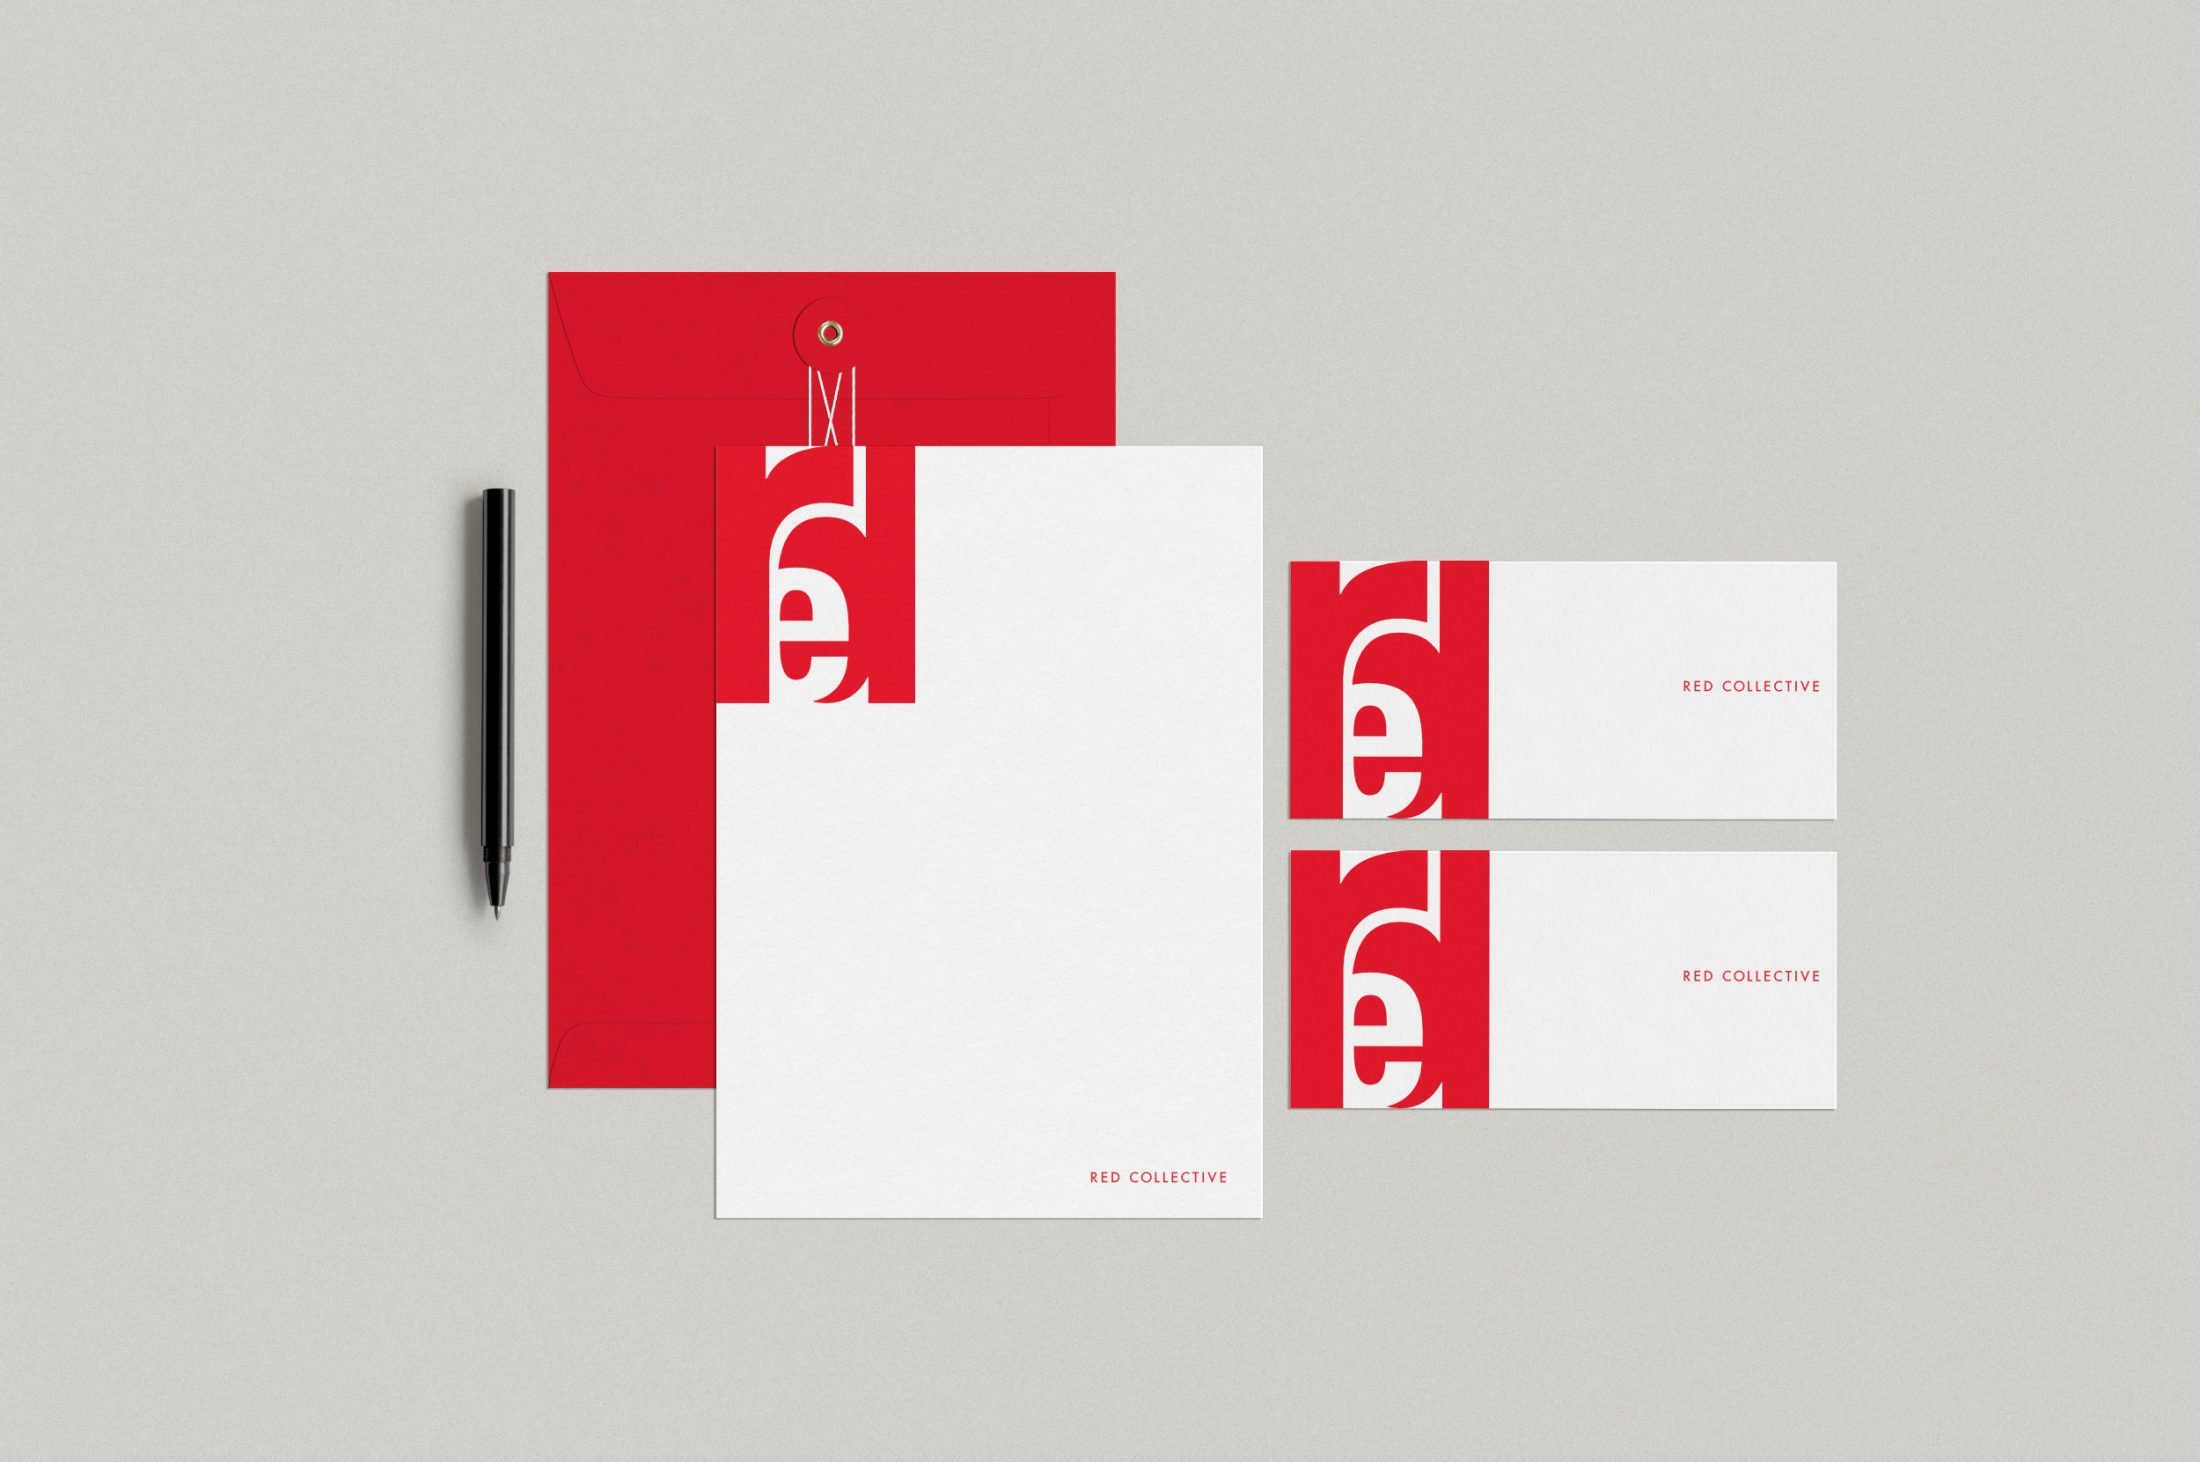 redcollective_stationary-2200×1462-1